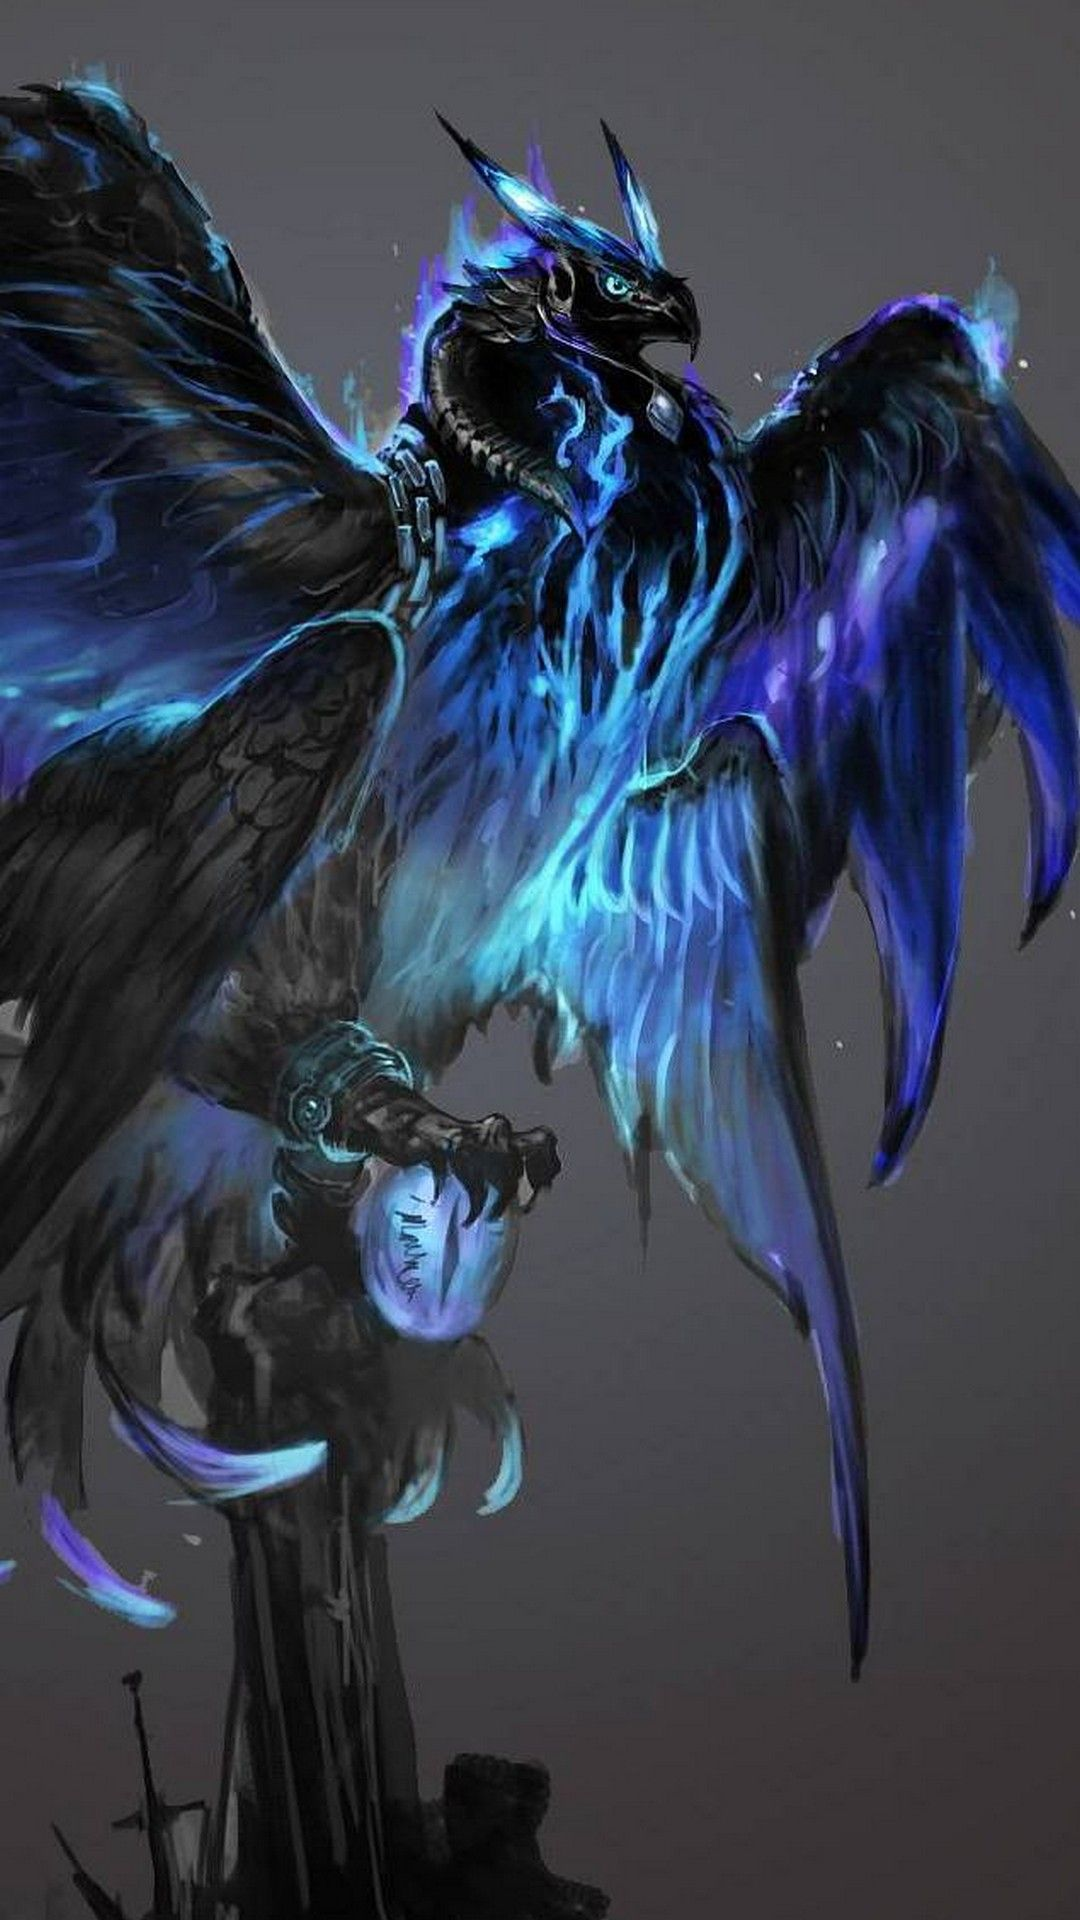 Ice Phoenix Wallpaper For iPhone Mythical creatures art